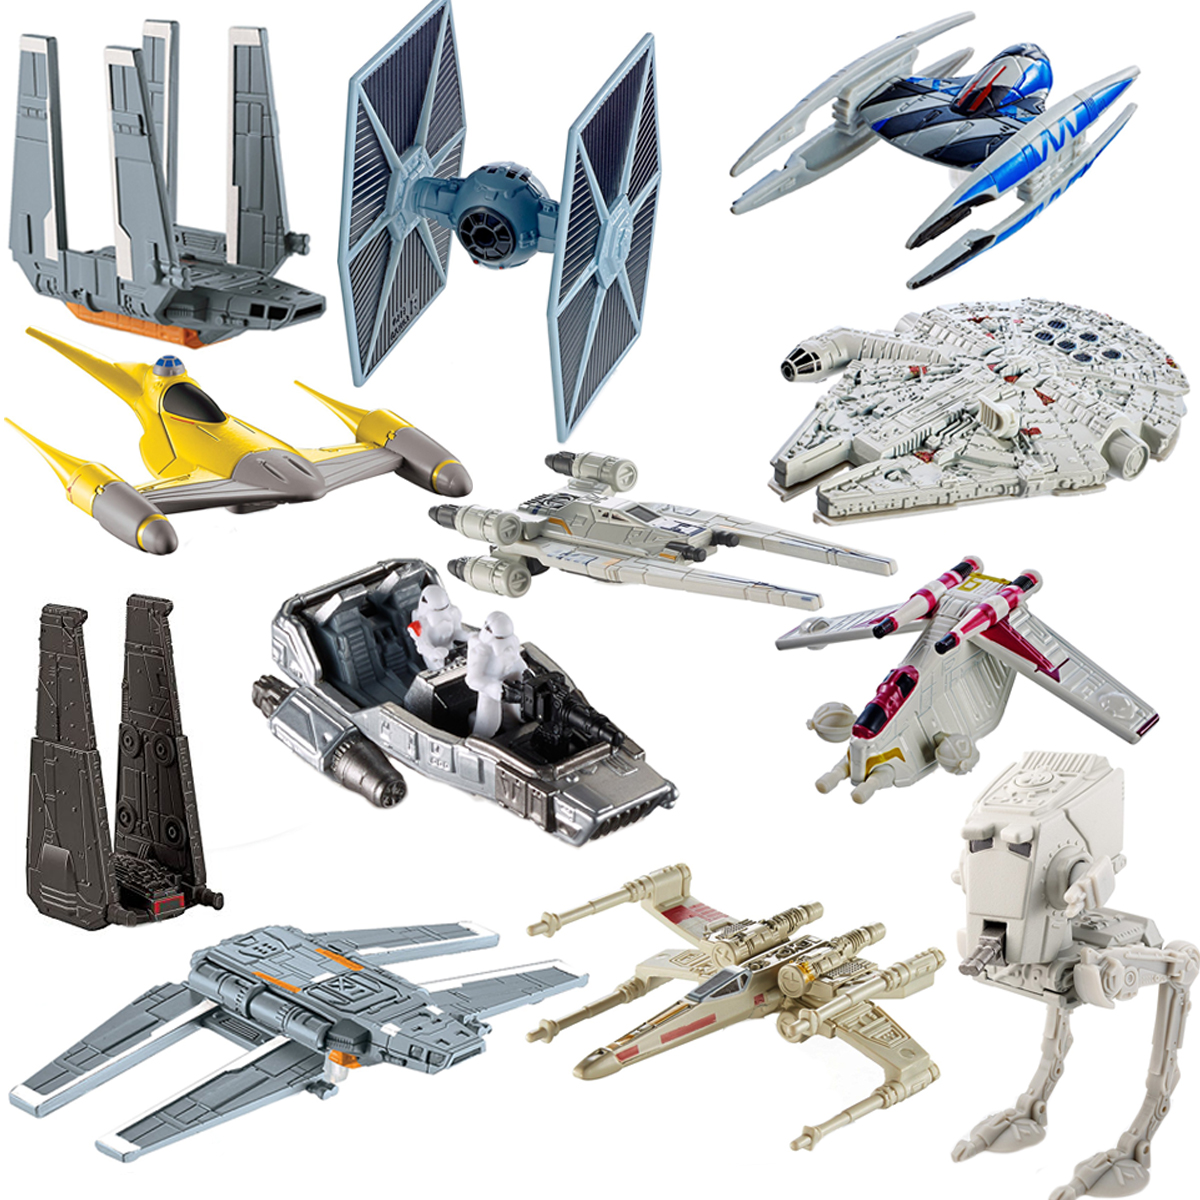 Star Wars (12 Pack) Hot Wheels Spaceship Models Toys Set Figures & Stands Mattel by Hot Wheels